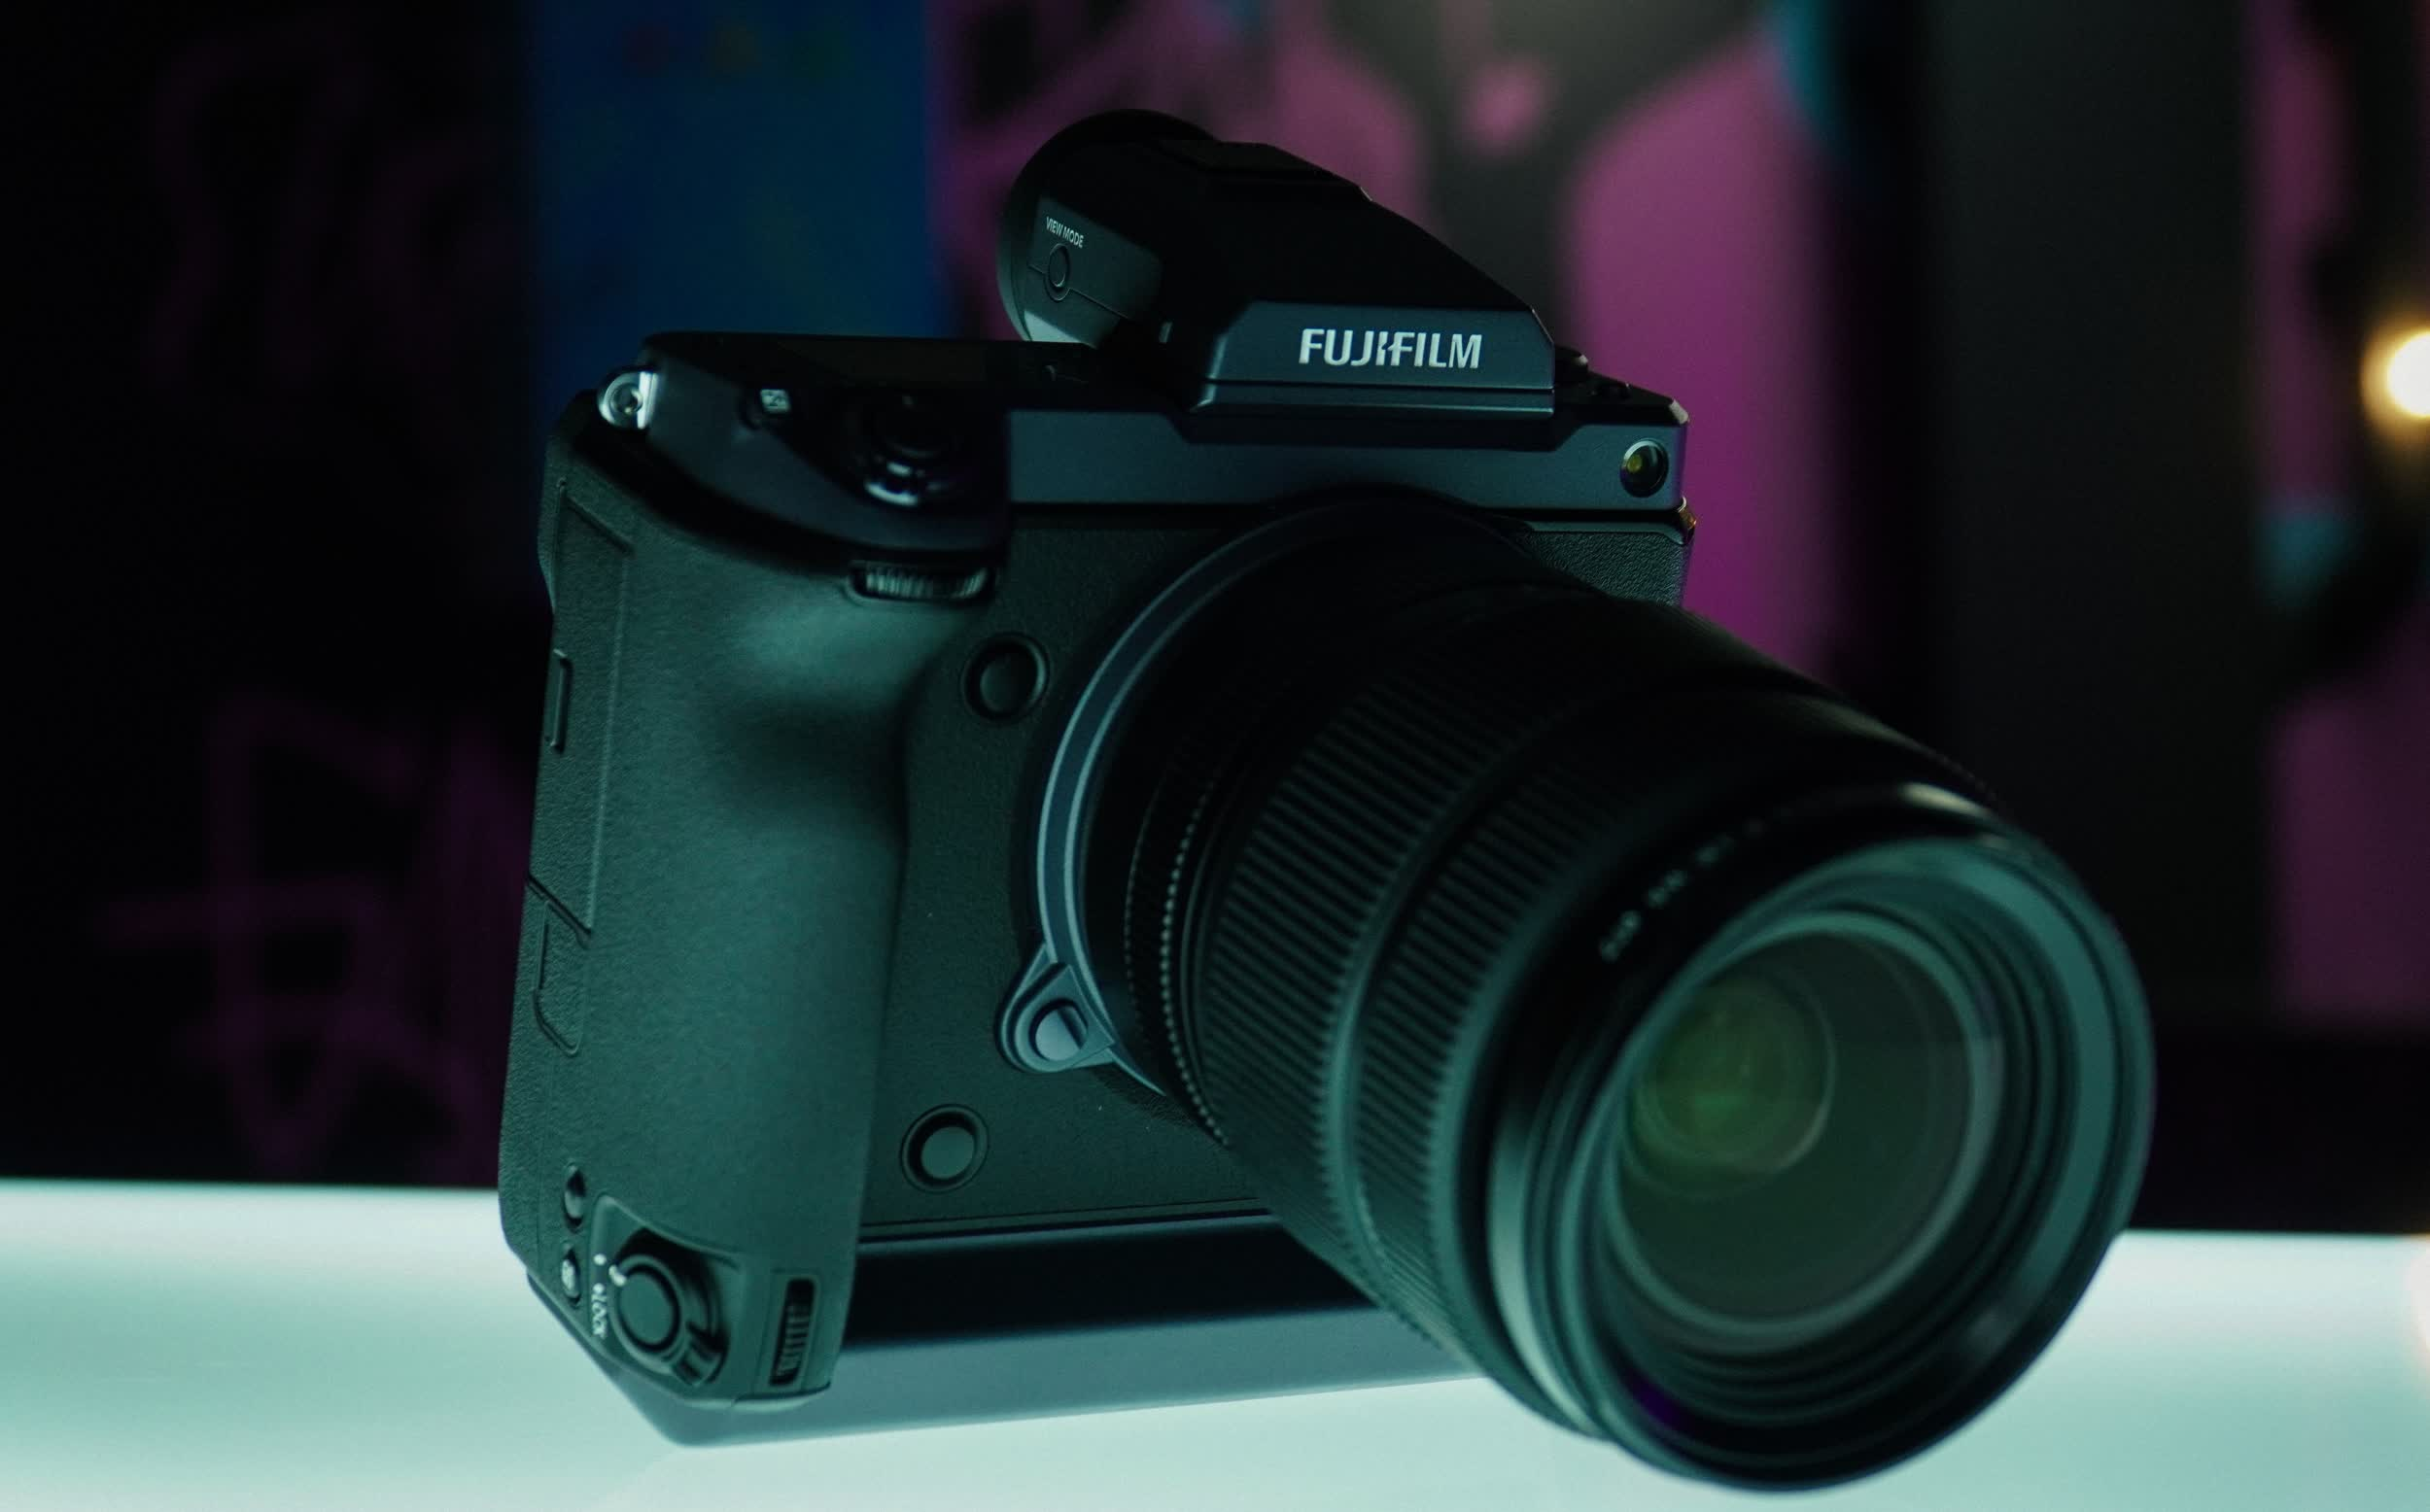 Fujifilm modified its flagship camera for infrared photography